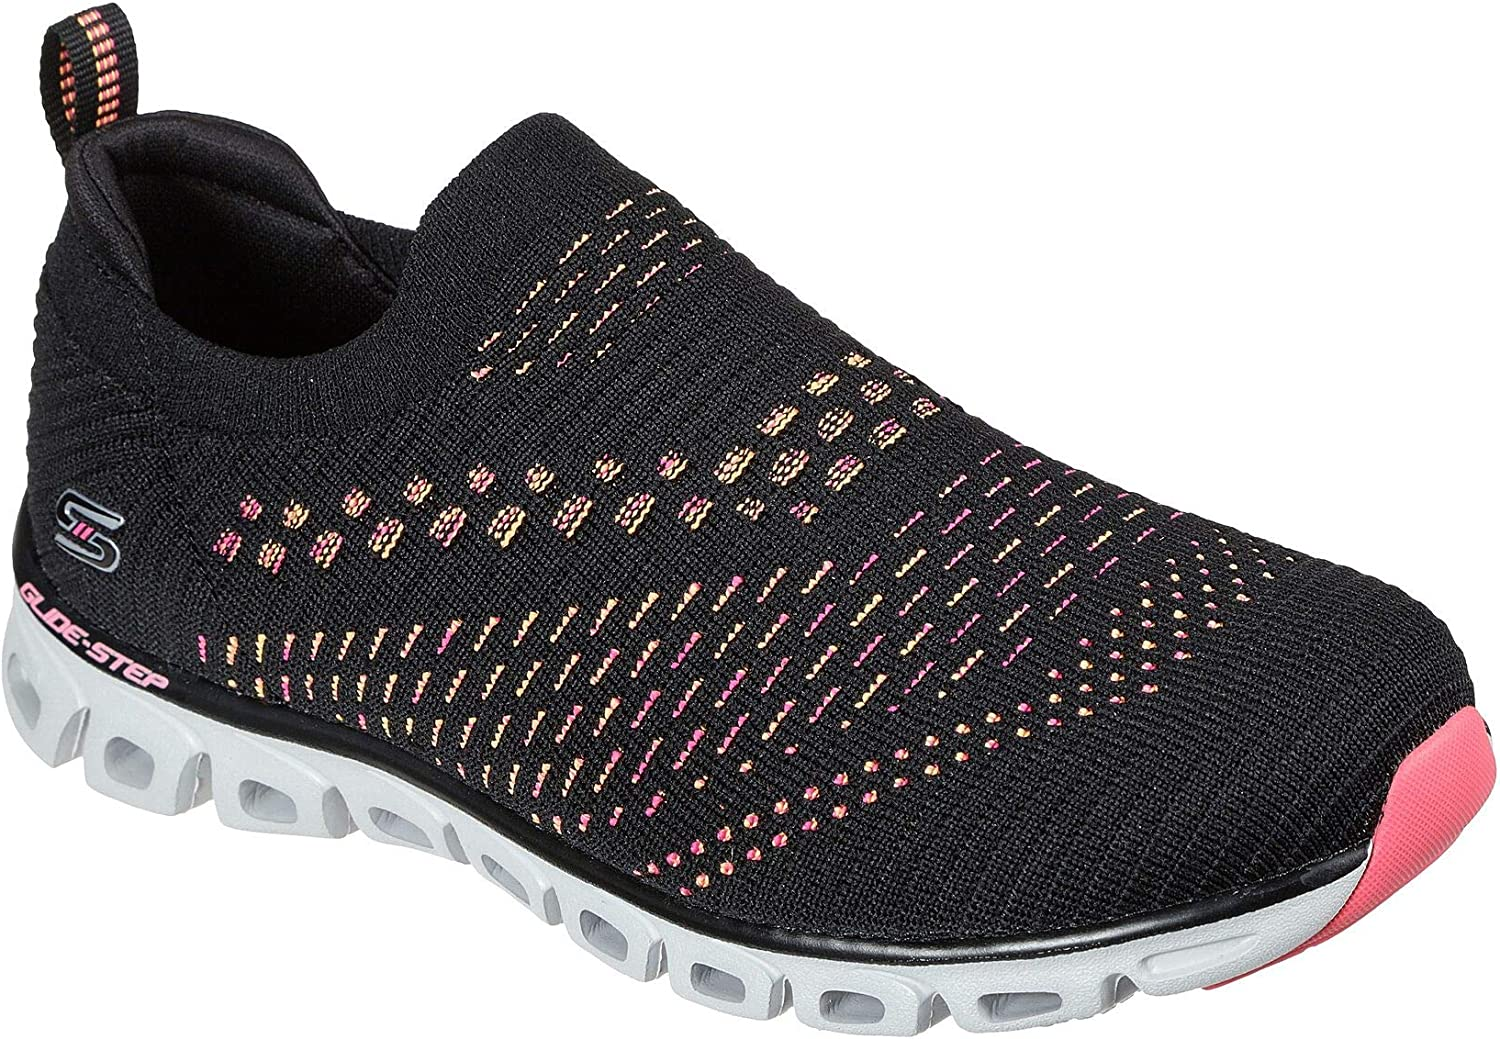 Department store Skechers Women's Glide Step - 55% OFF Oh Pink So Black Hot Soft Sneaker